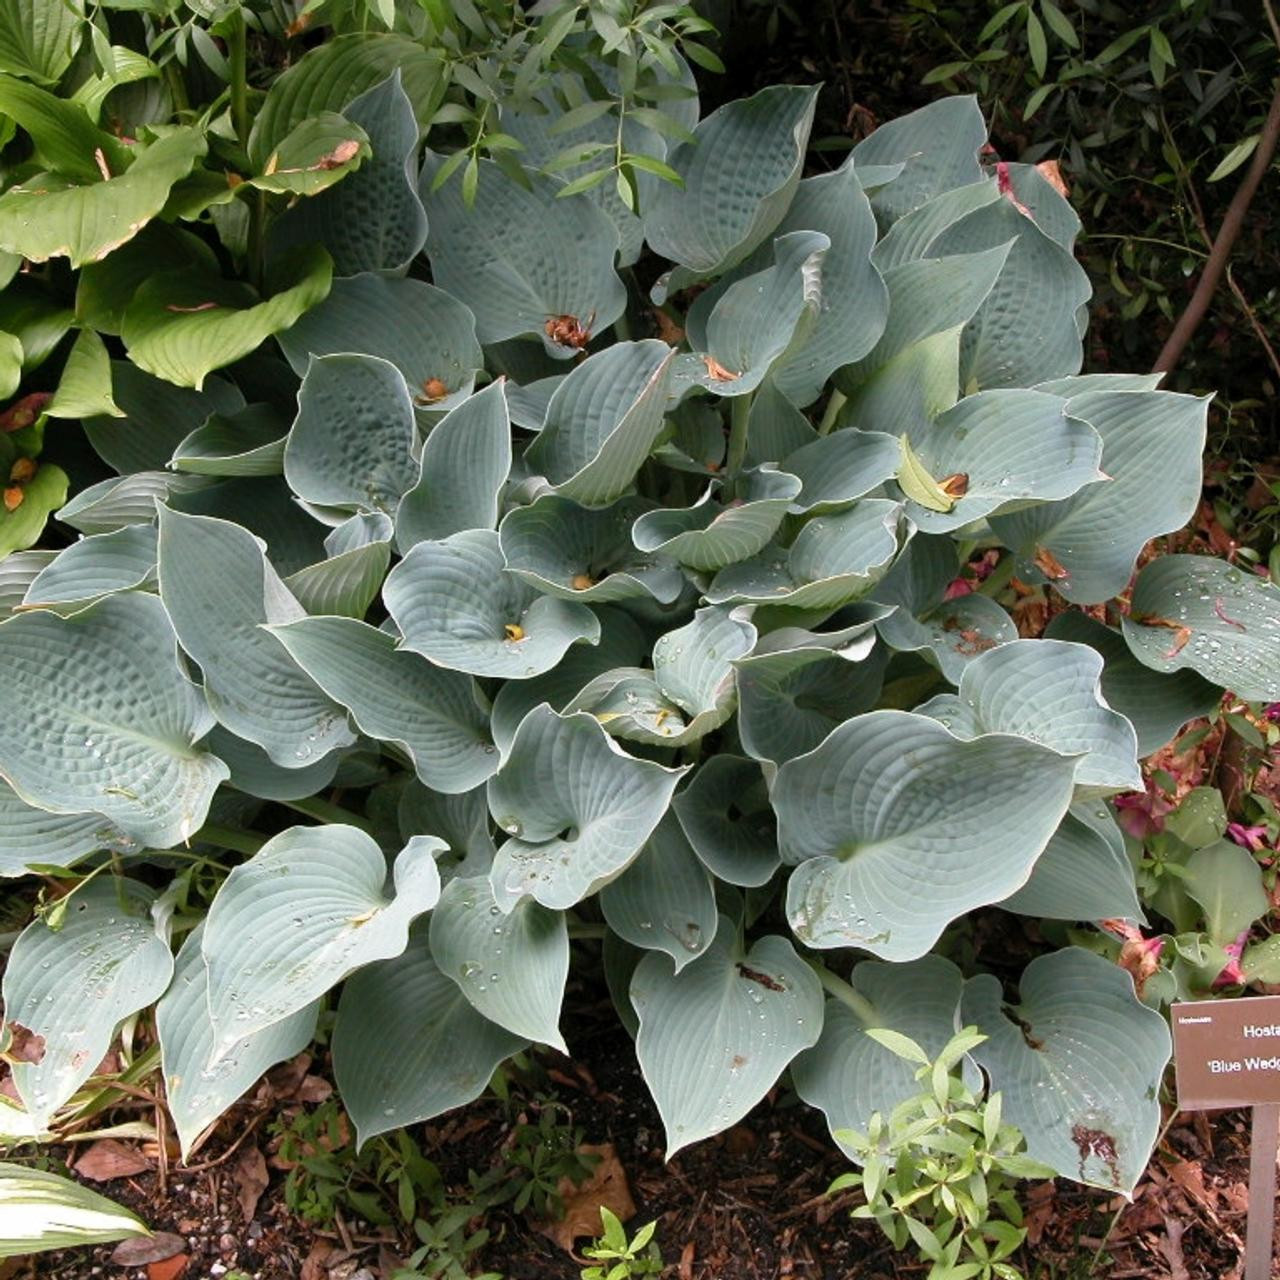 Hosta 'Blue Wedgwood' (25523)